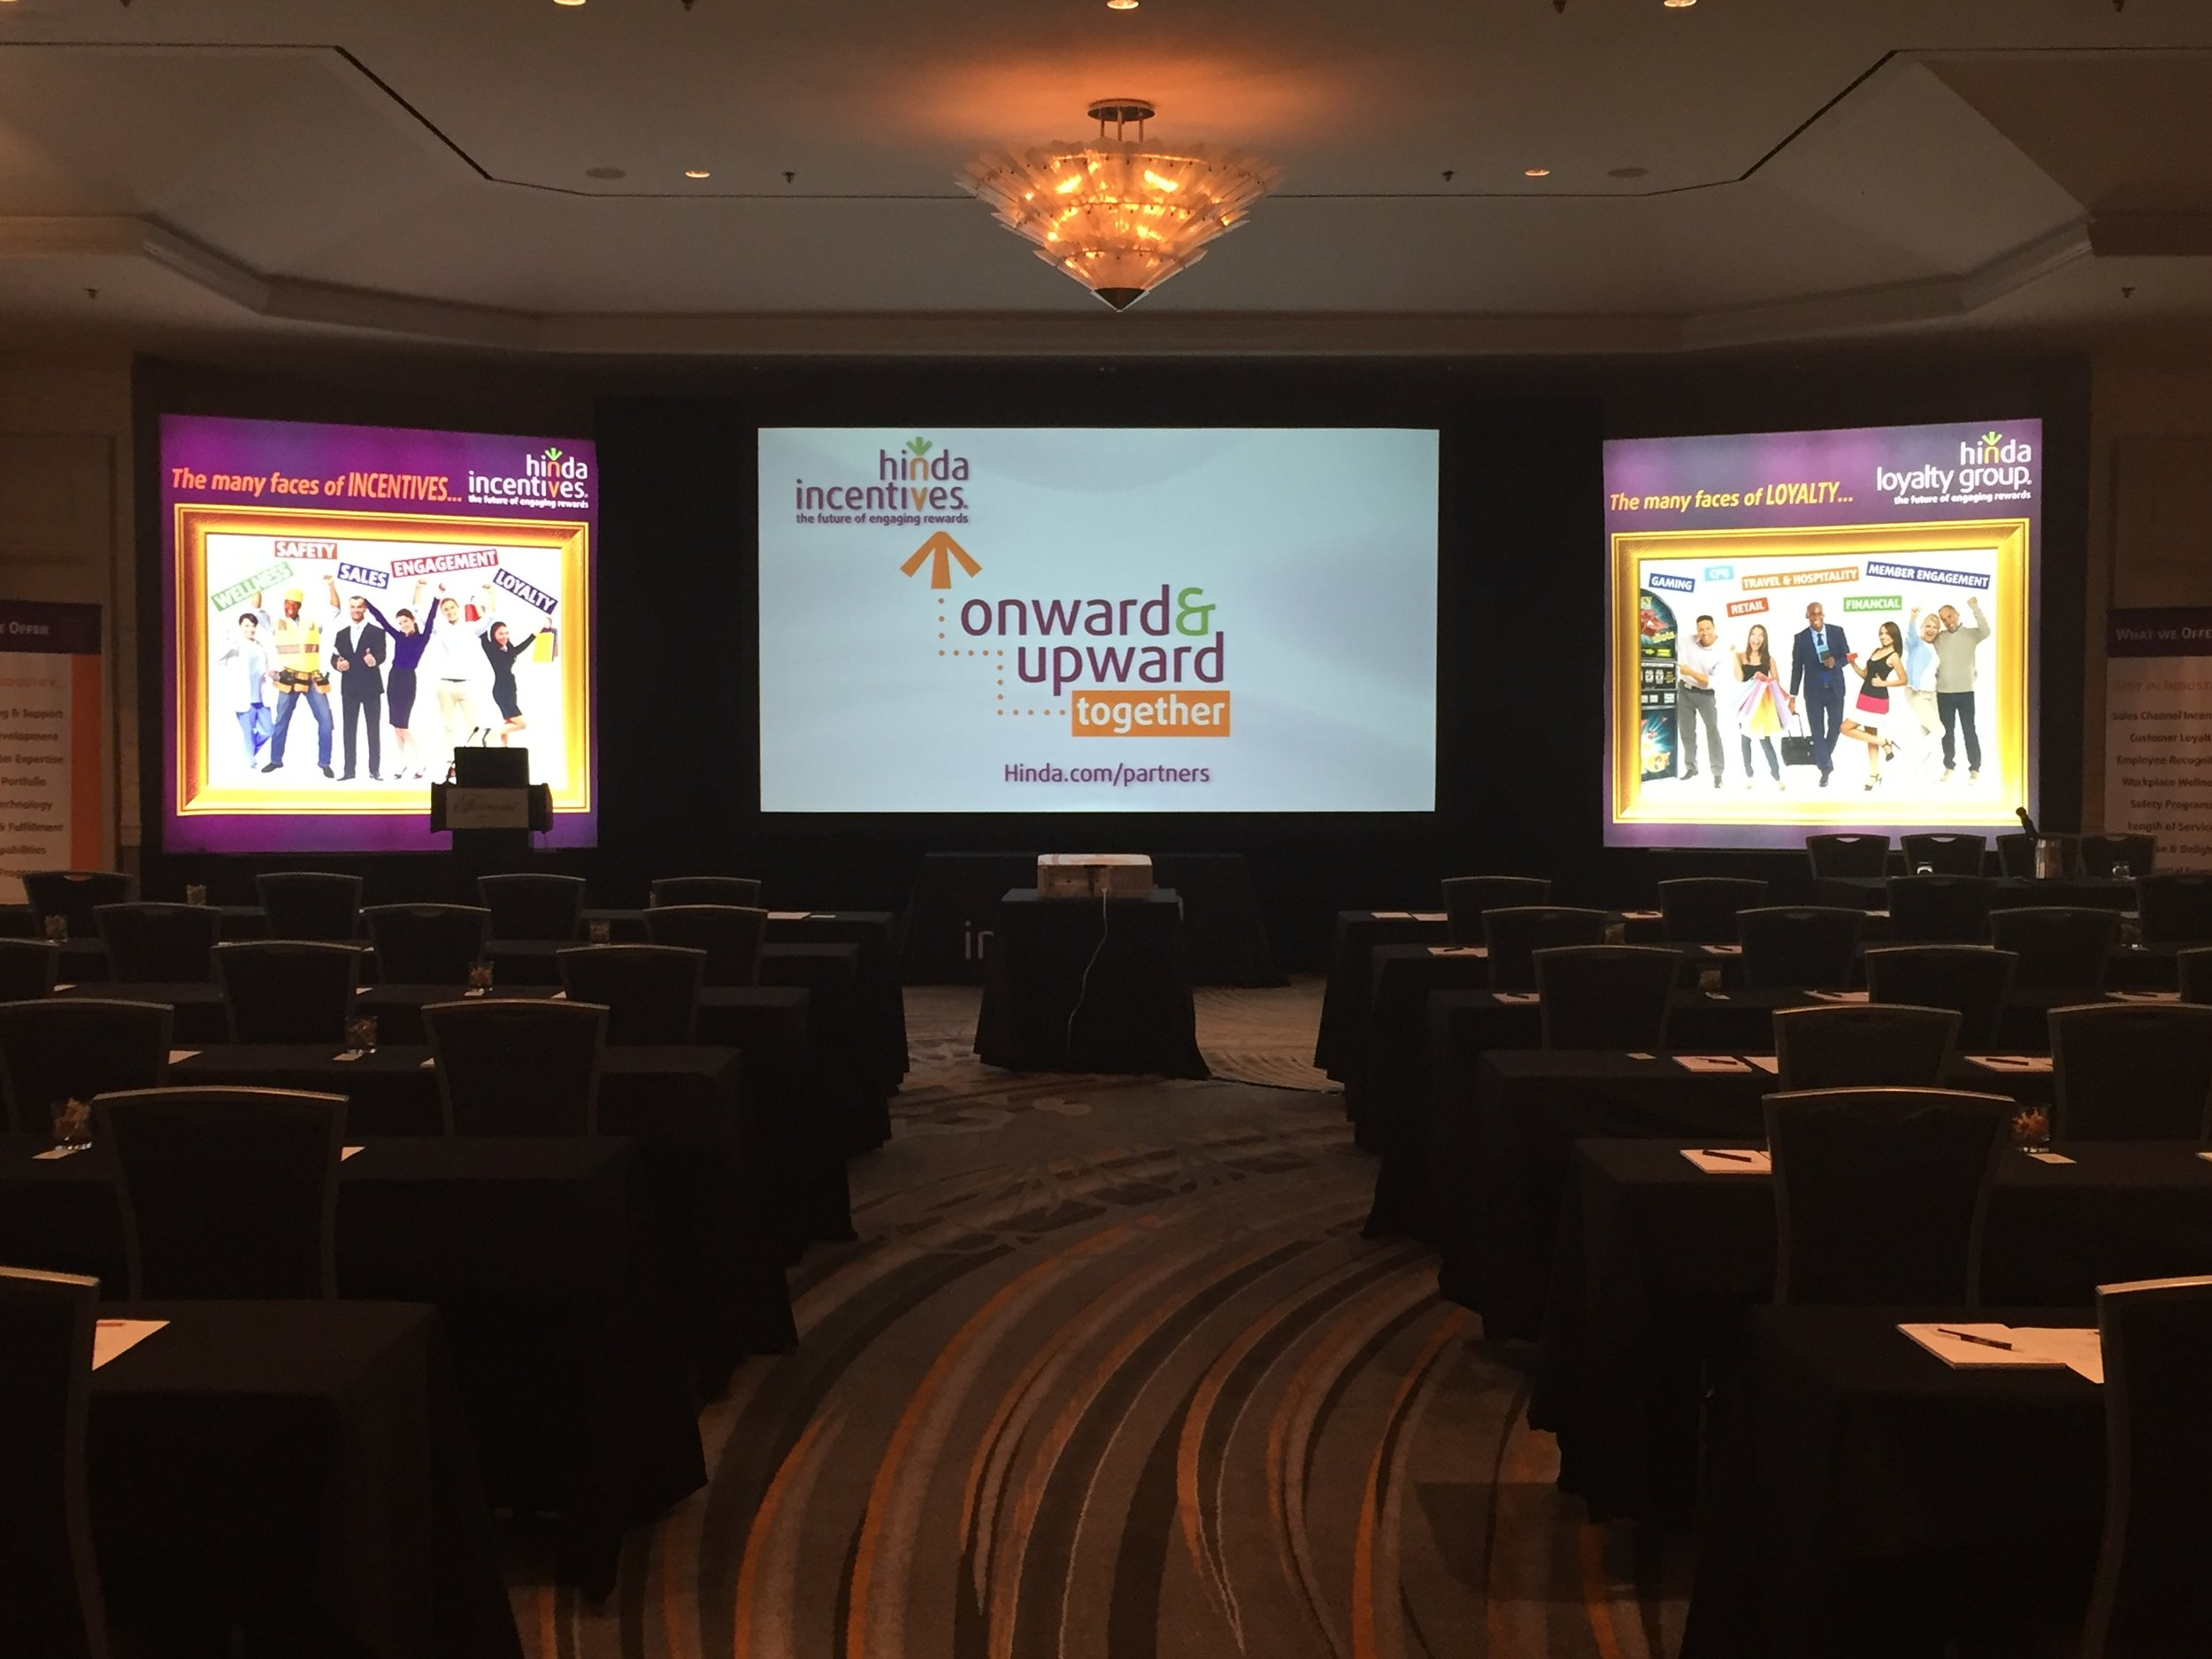 Monday's setup in the Gold Room all ready for the summit to begin!